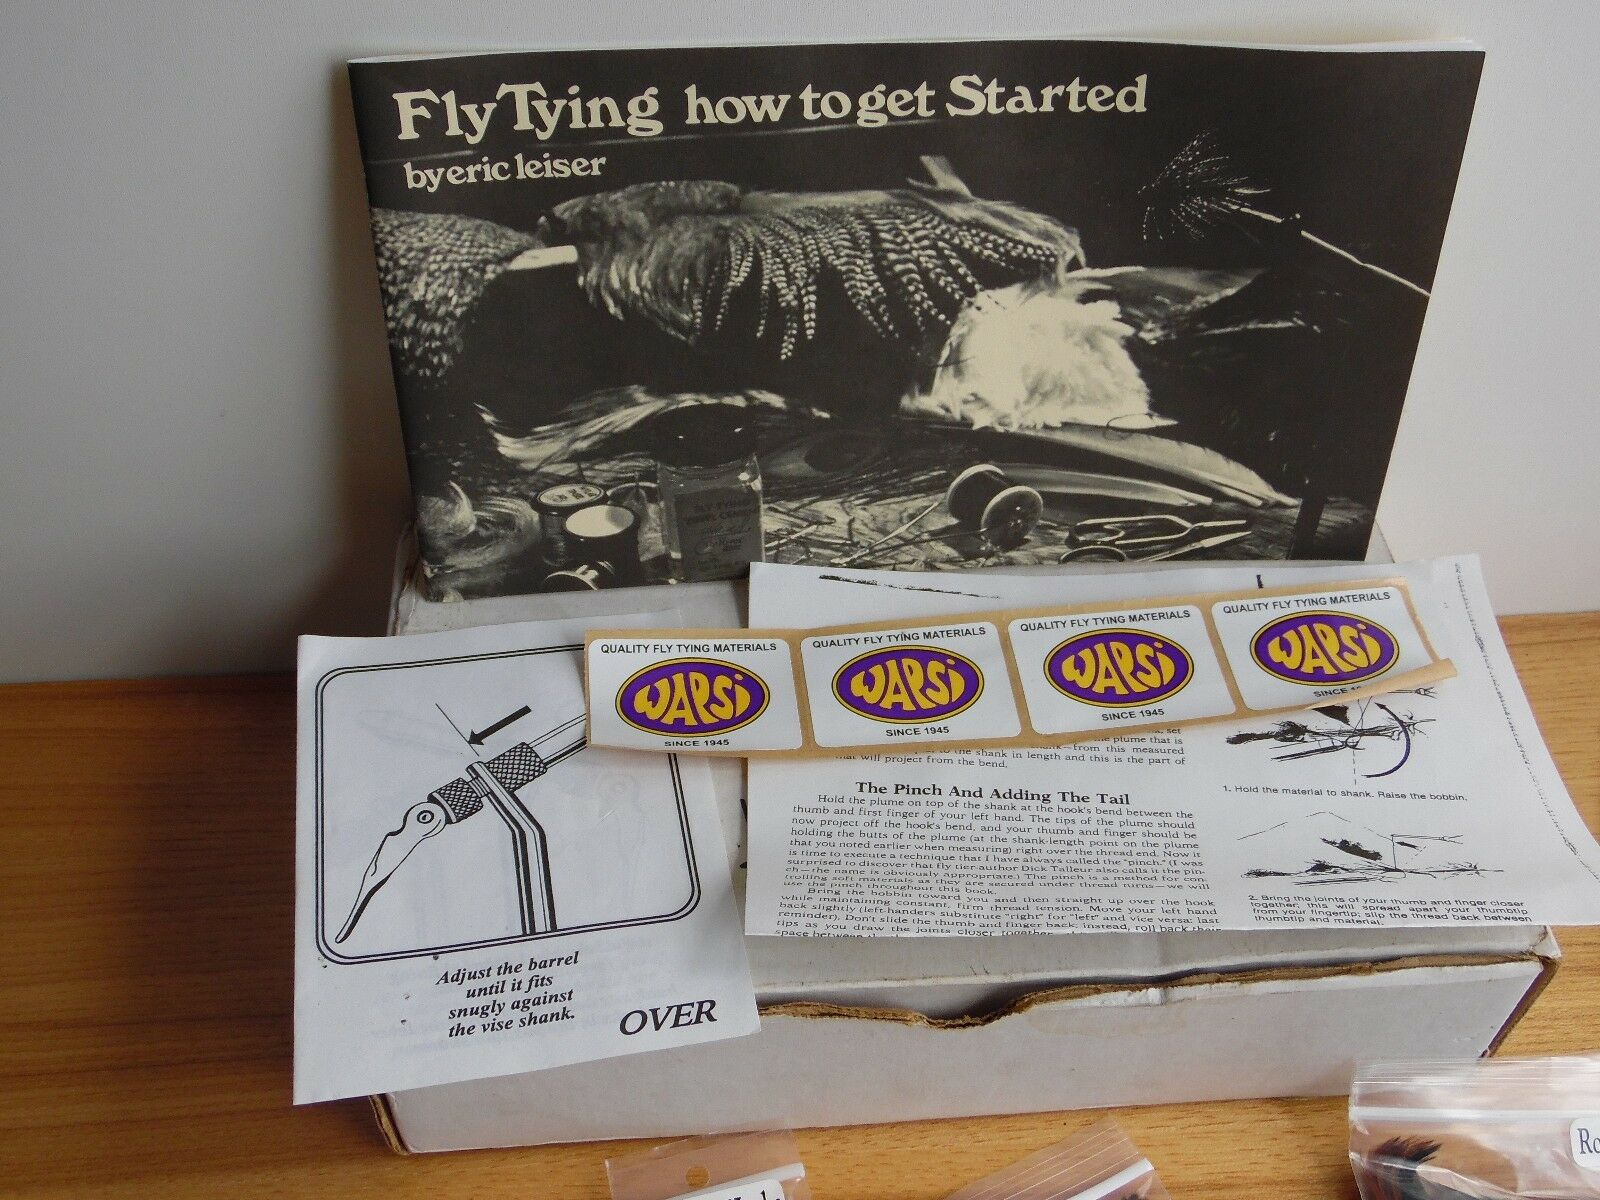 VTG SUNRISE AA FLY TYING VISE with tools book lots of extras feathers fur etc.